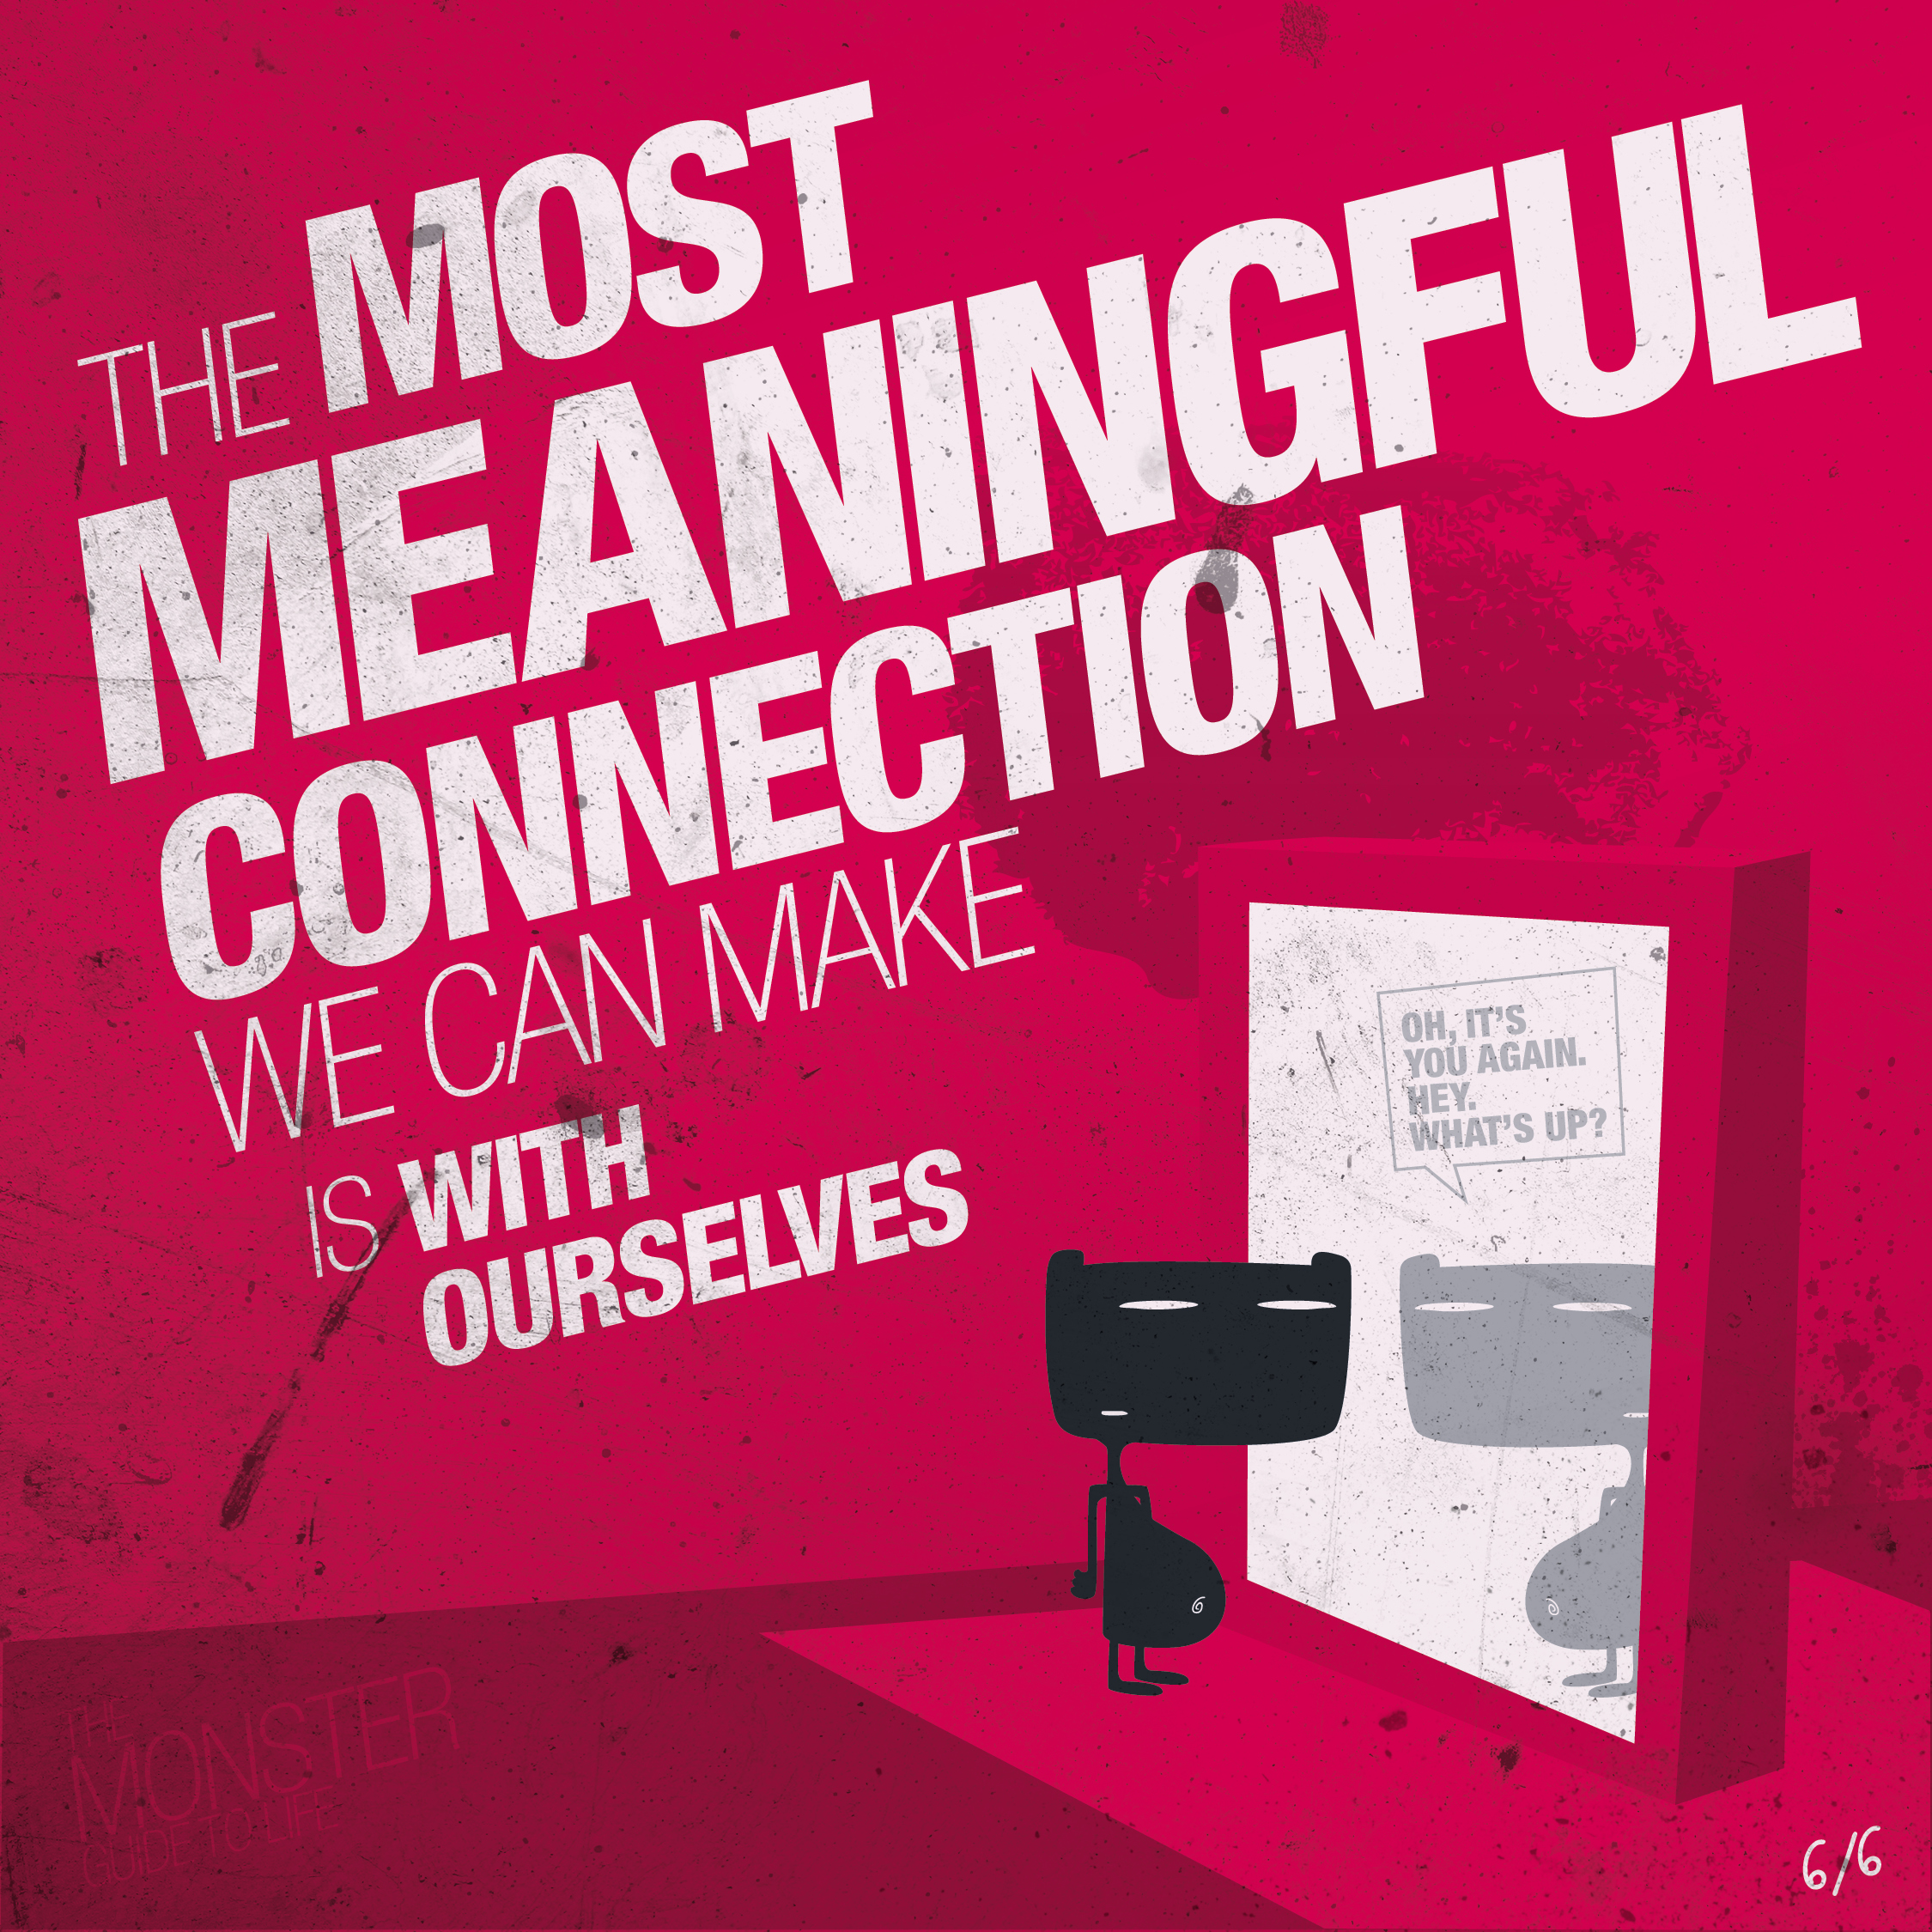 The most meaningful connection we can make is with ourselves